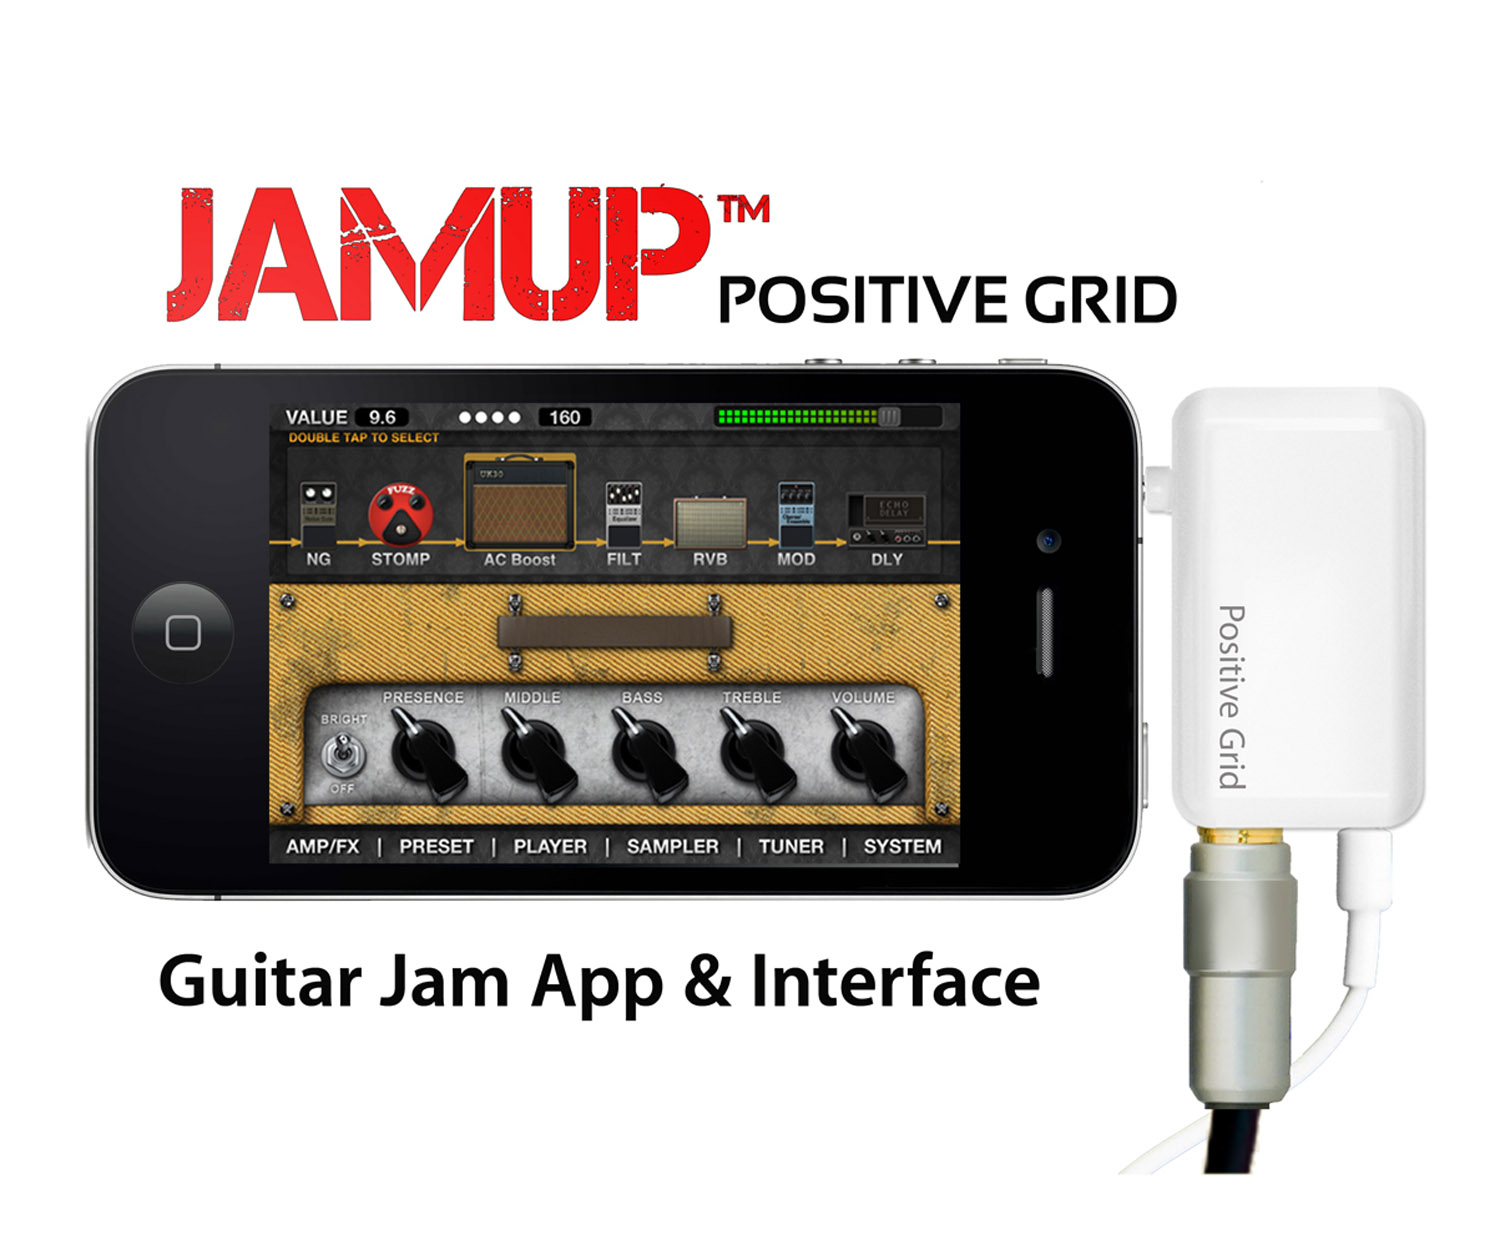 jamup guitar effects app stratocaster guitar culture stratoblogster. Black Bedroom Furniture Sets. Home Design Ideas